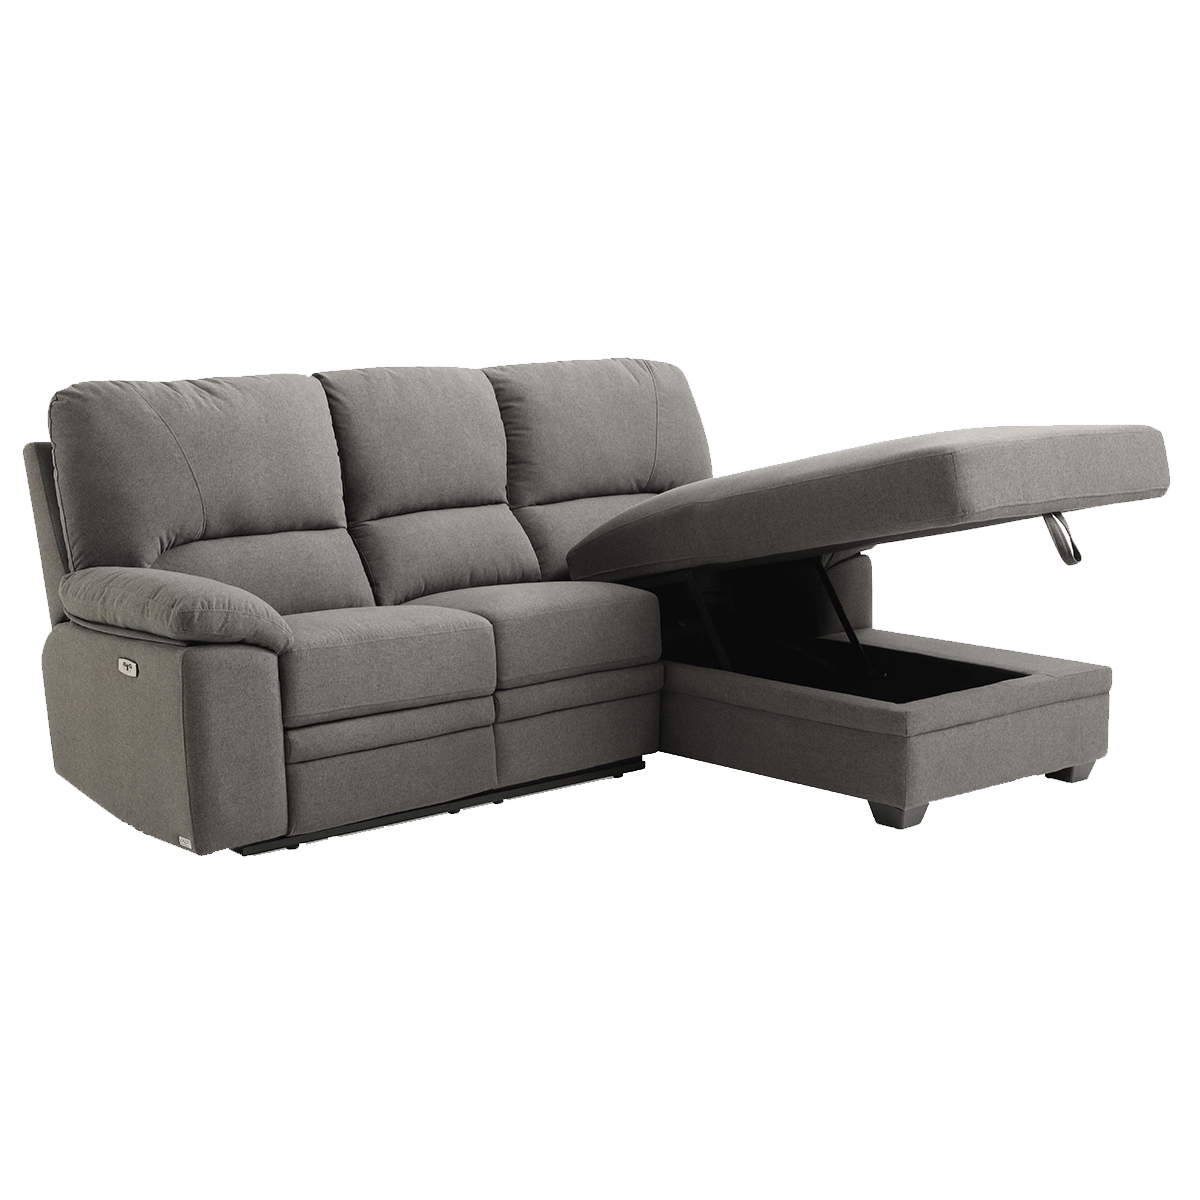 Victoria sectional